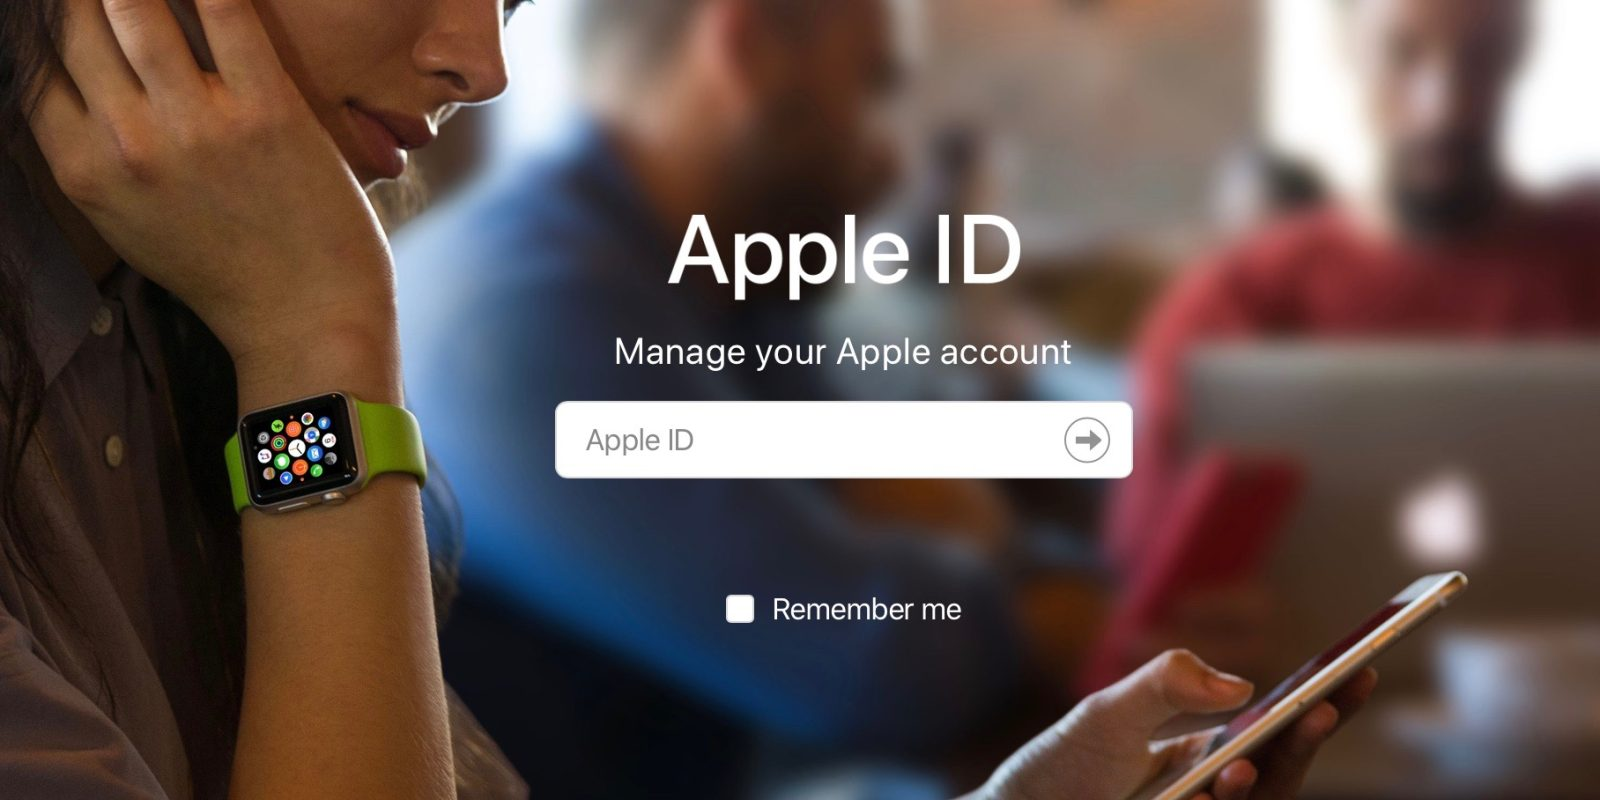 How to permanently delete an Apple ID account - 9to5Mac